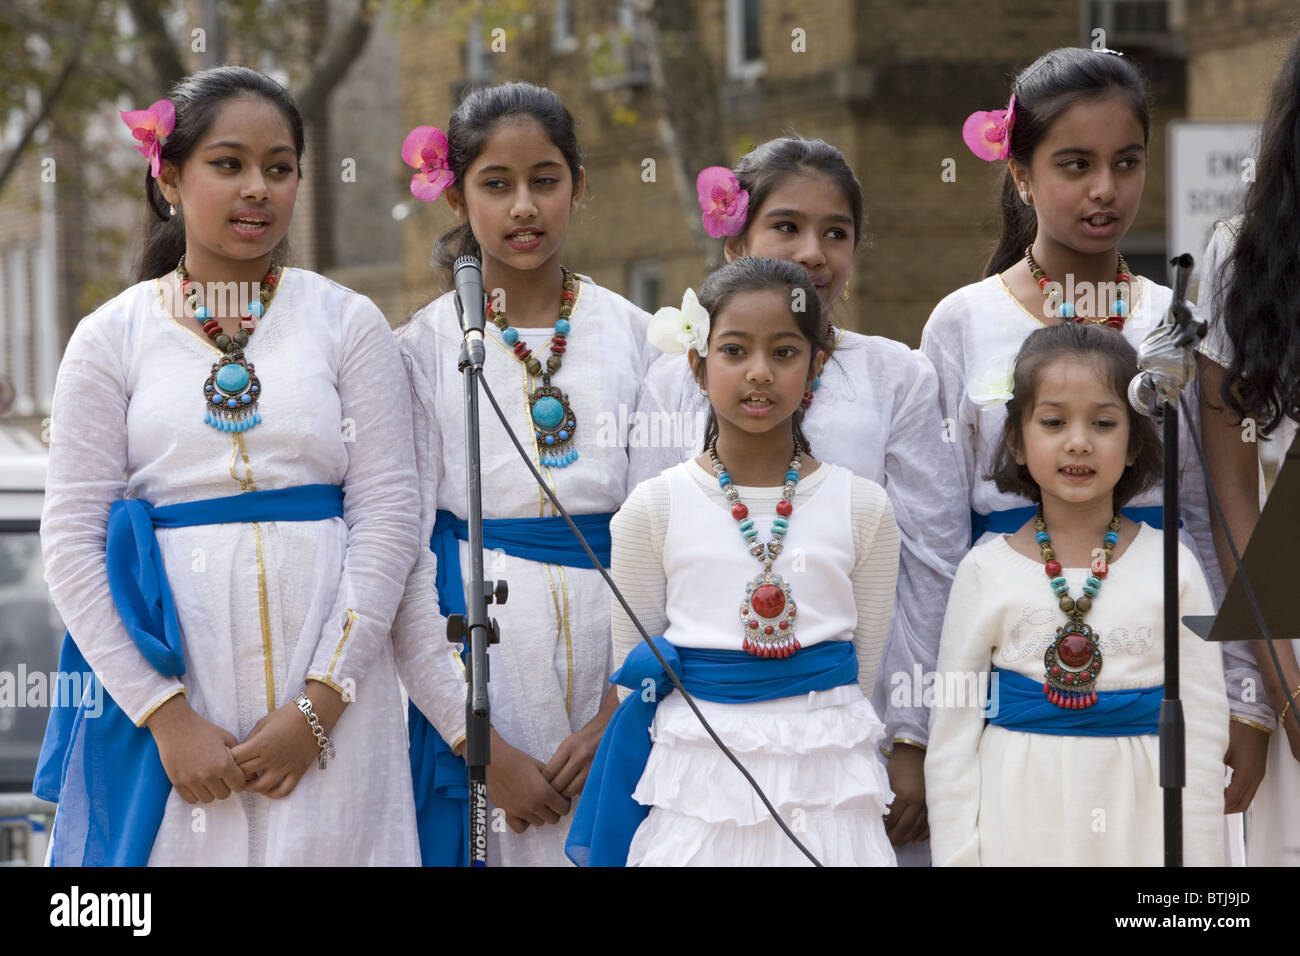 Bangladeshi American childrens chorus perform at a festival for world cultures in Brooklyn, New York. - Stock Image